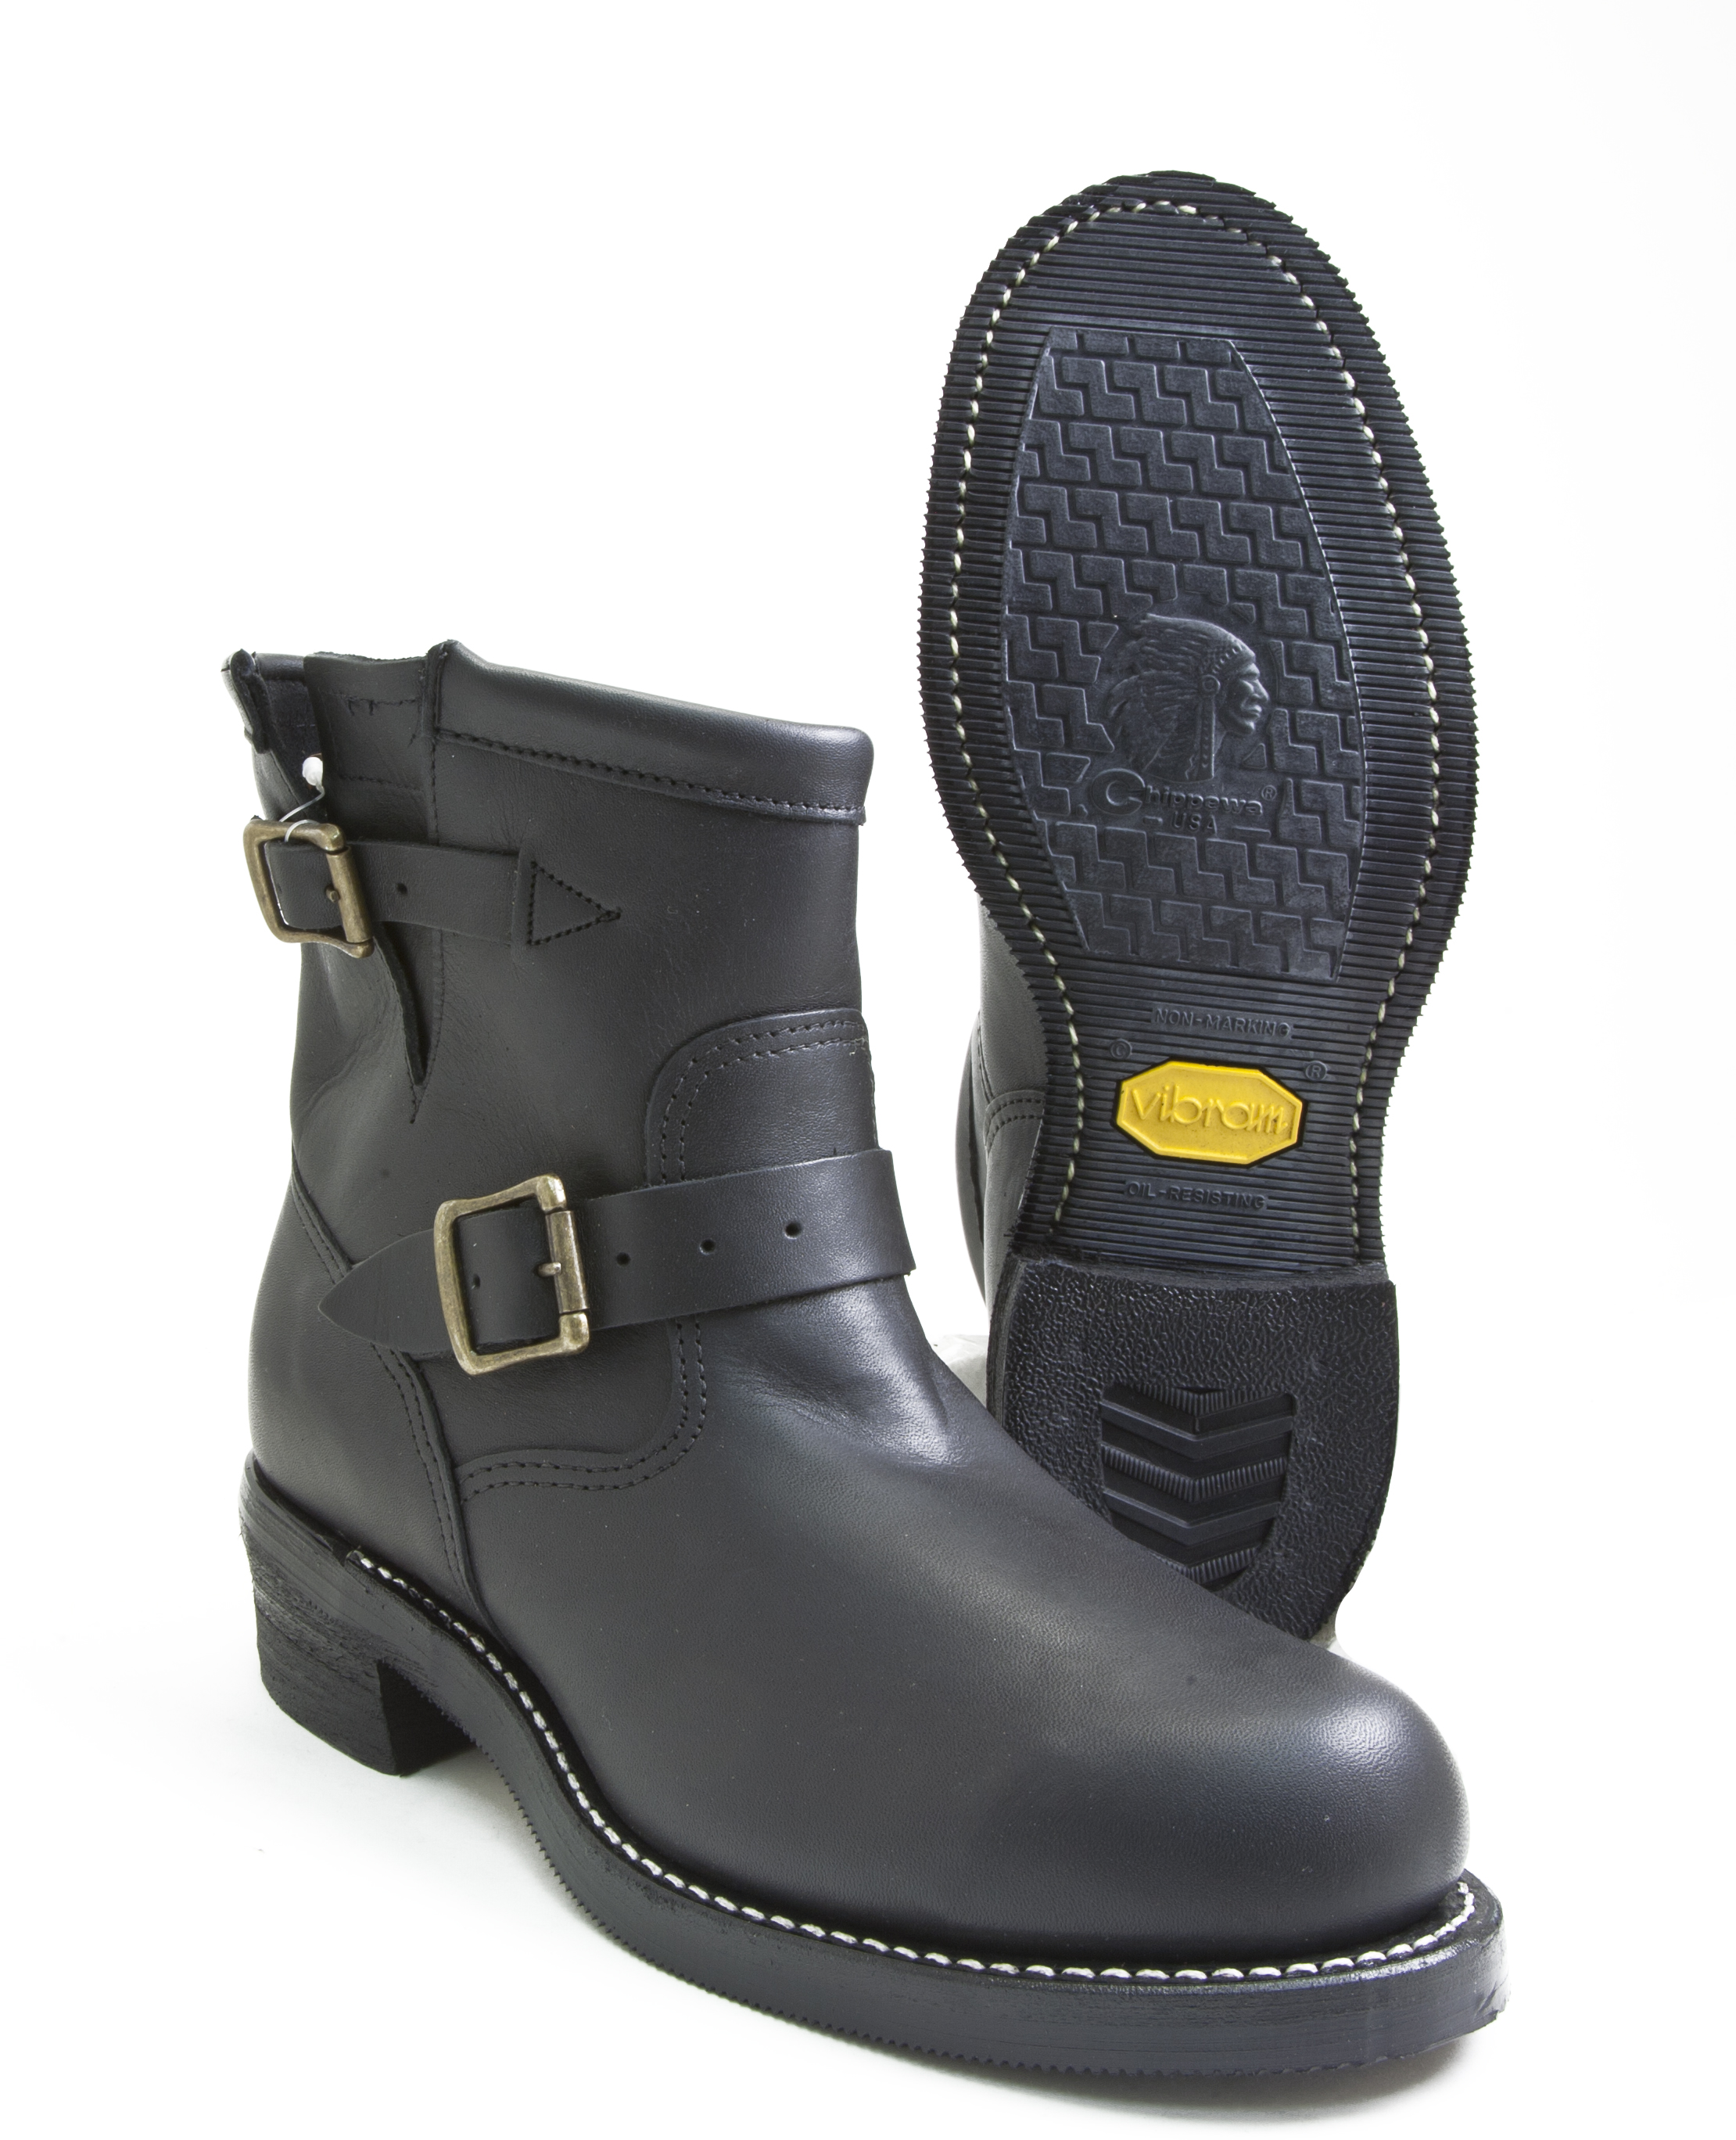 df5073b8177 Details about Chippewa Low Engineer 27872 Black Leather Steel Toe  Motorcycle Boot Made In USA